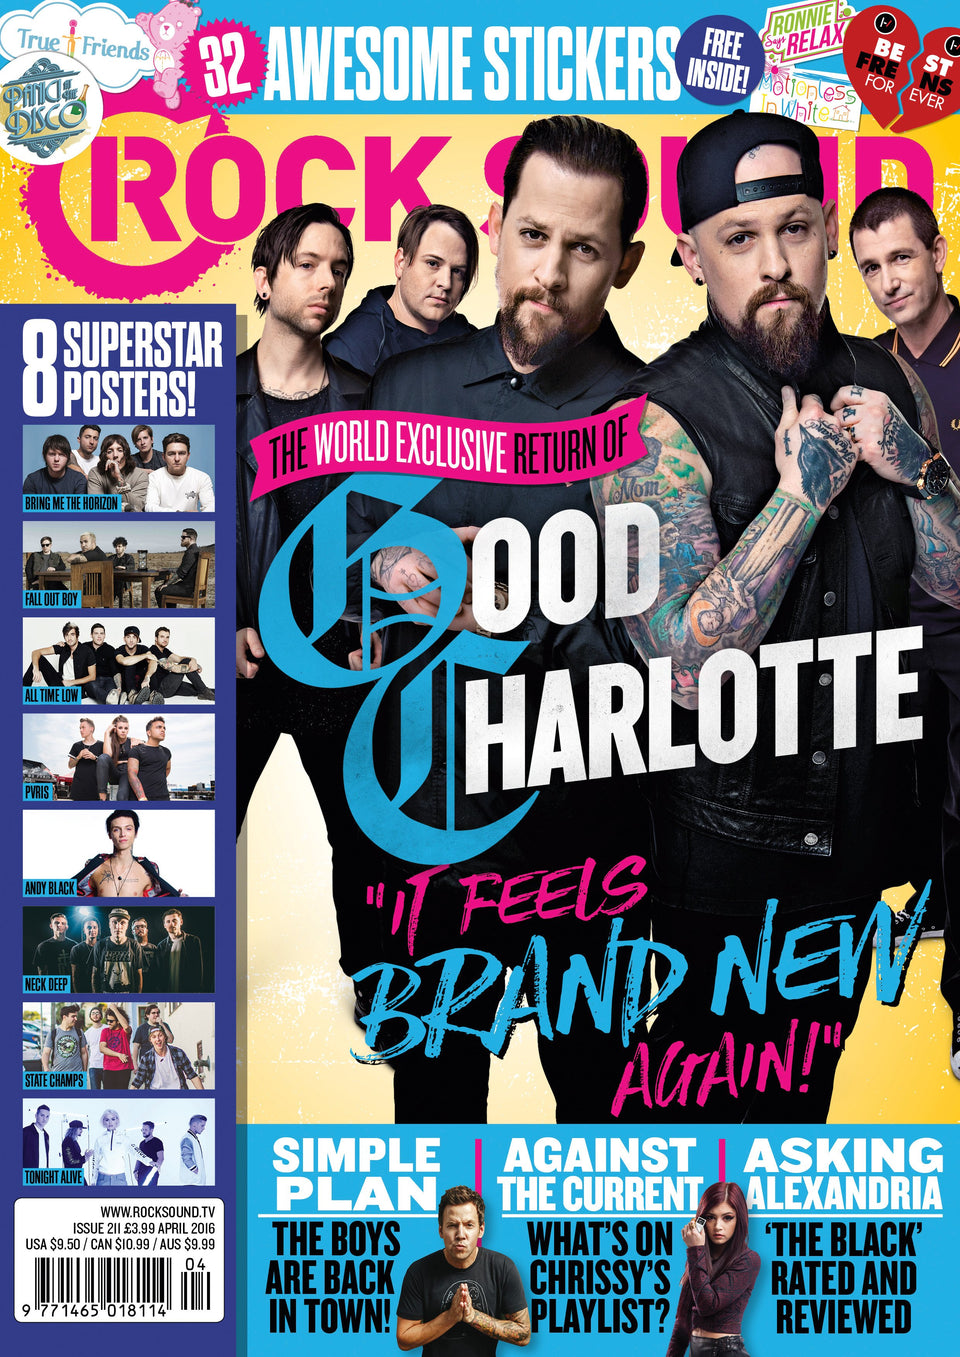 Rock Sound Issue 211 - Good Charlotte